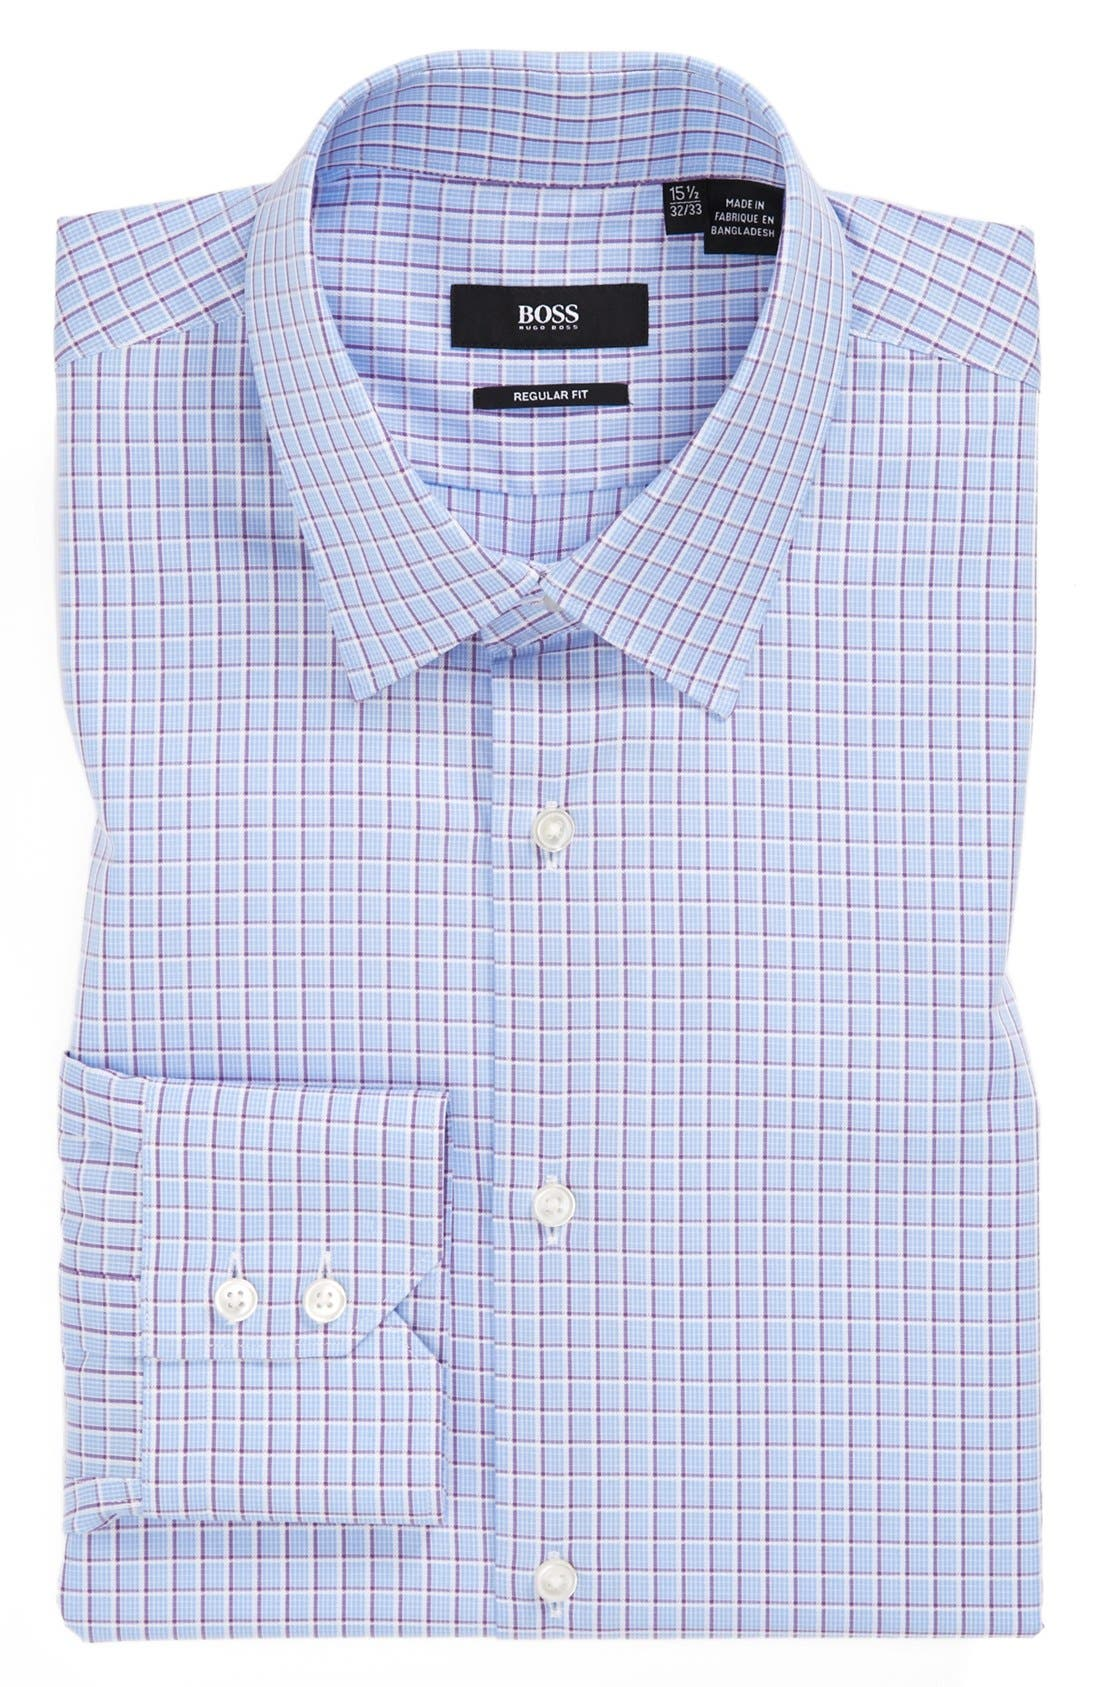 Alternate Image 1 Selected - BOSS HUGO BOSS 'Gulio' Regular Fit Dress Shirt